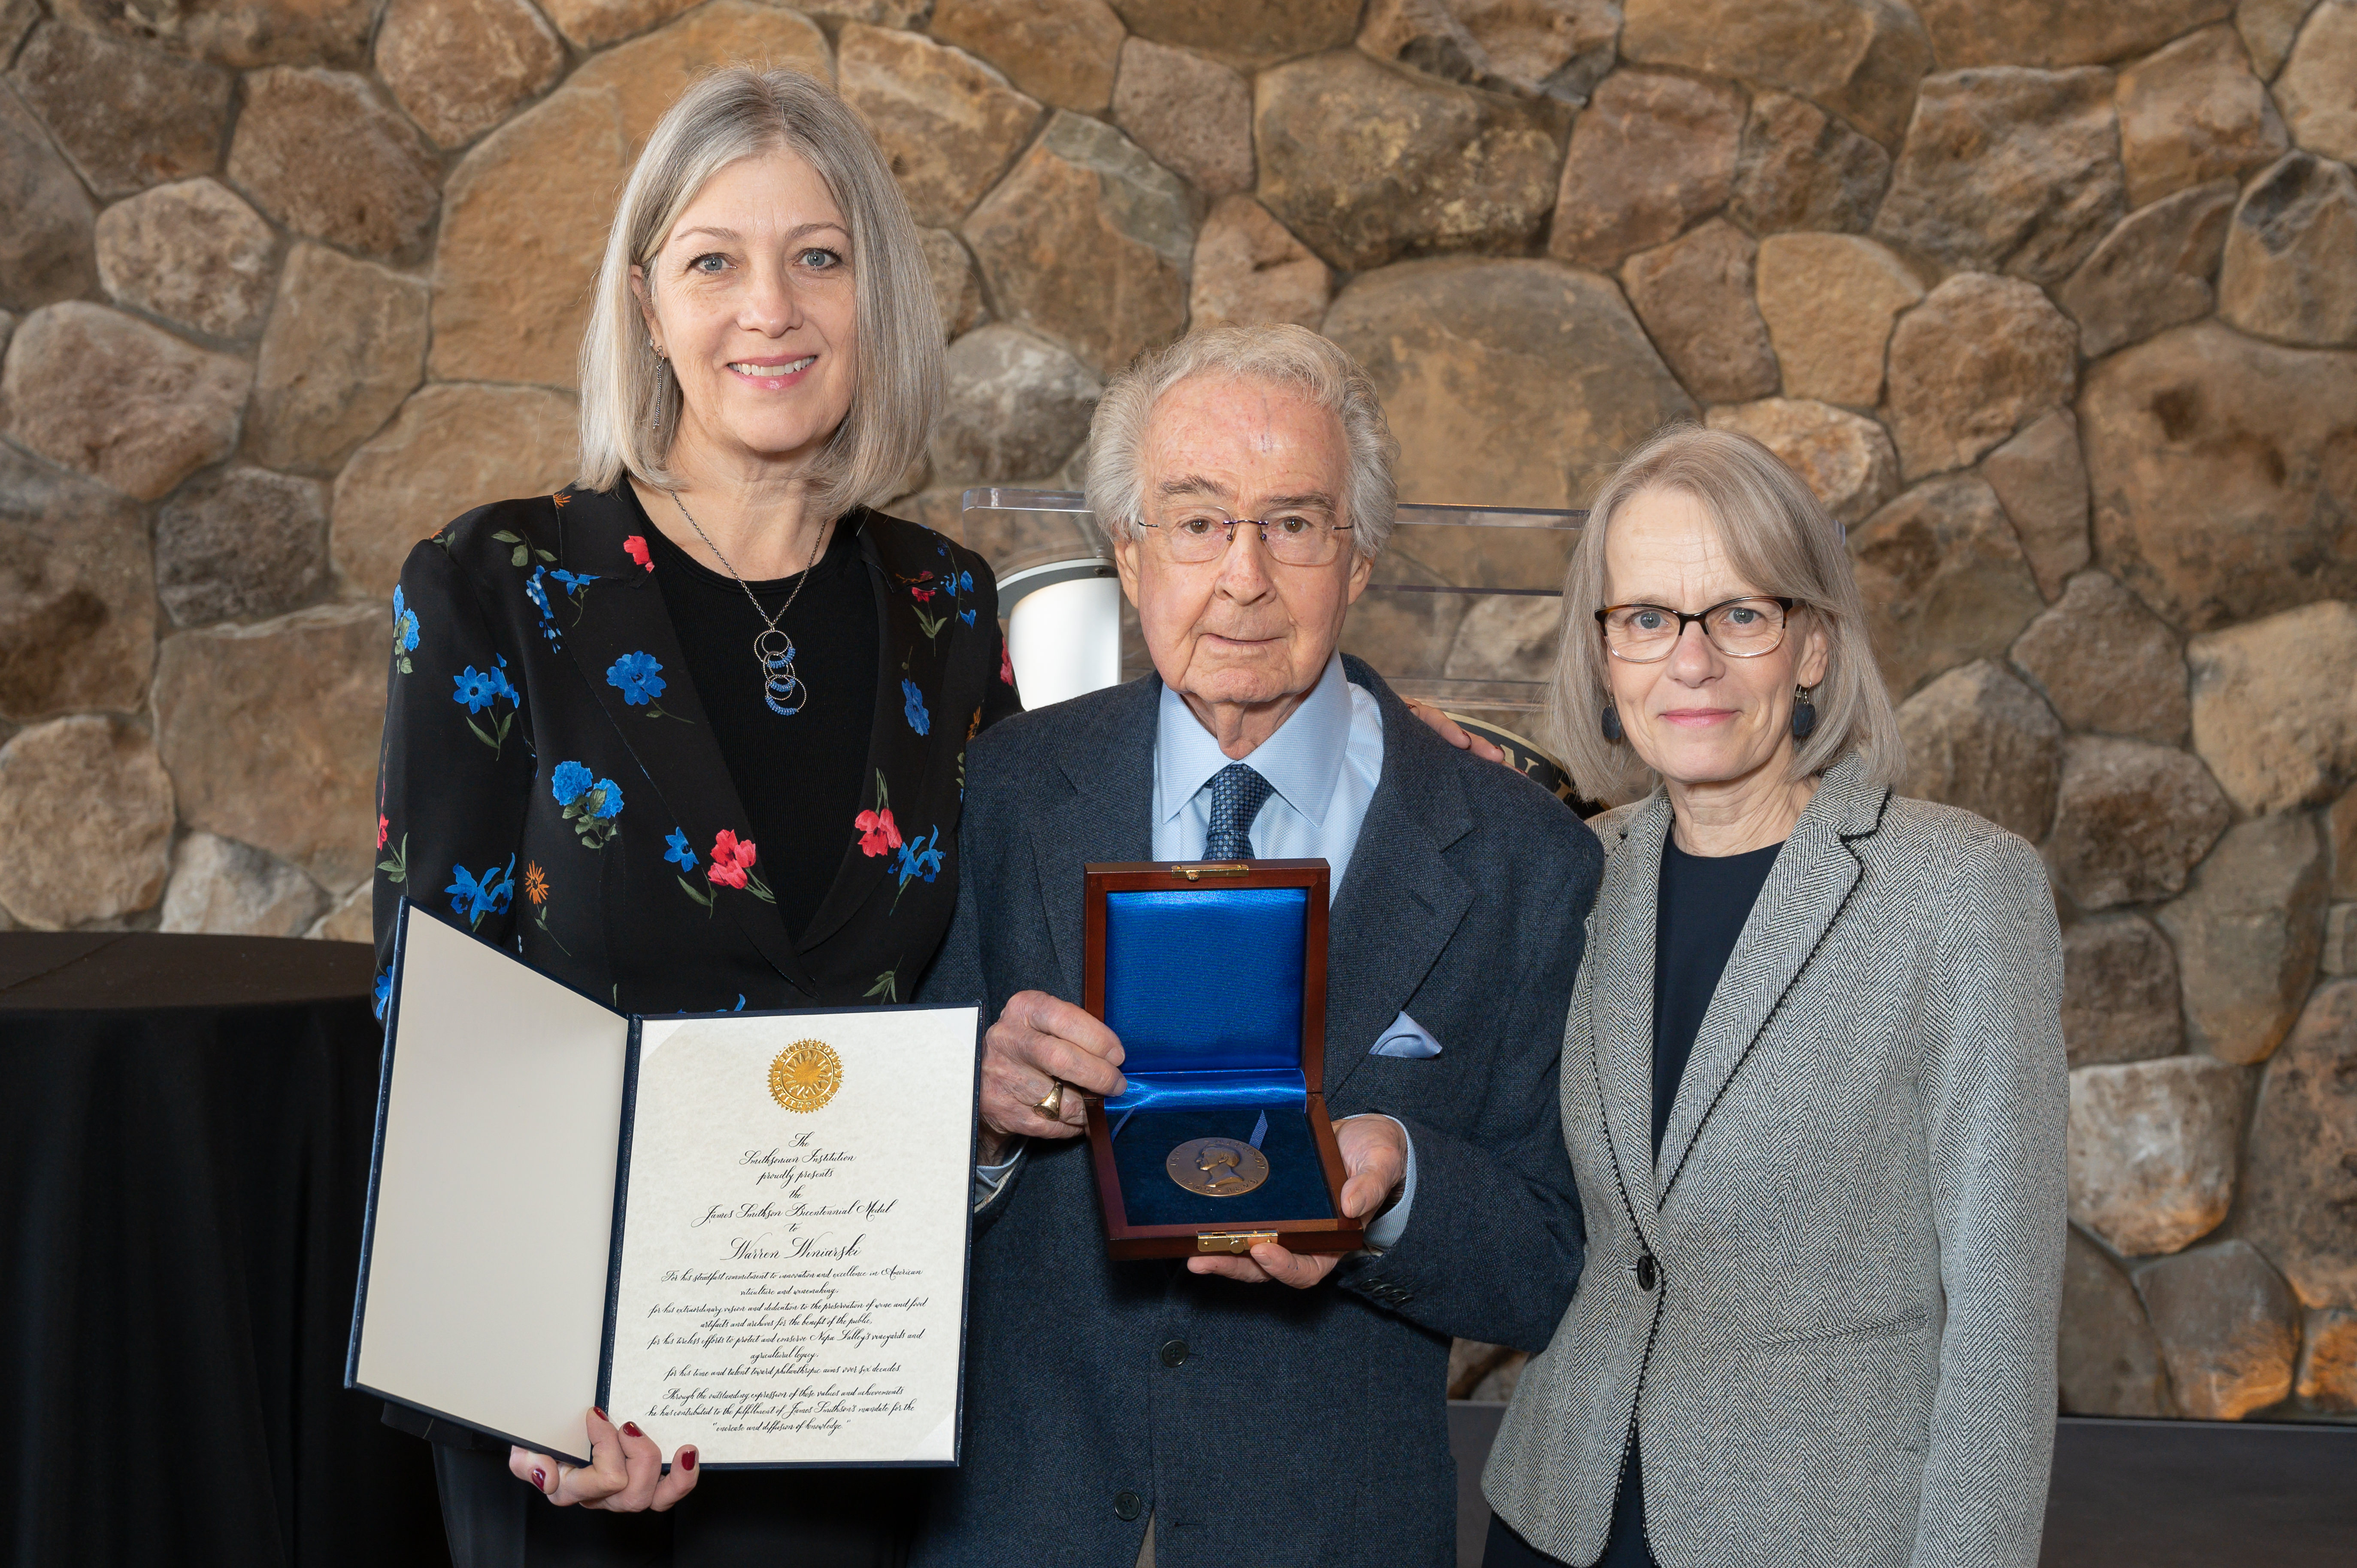 Three people standing. The woman on the left holds open a book with a certificate inside. The man in the center holds a medal on a blue silk-lined box.